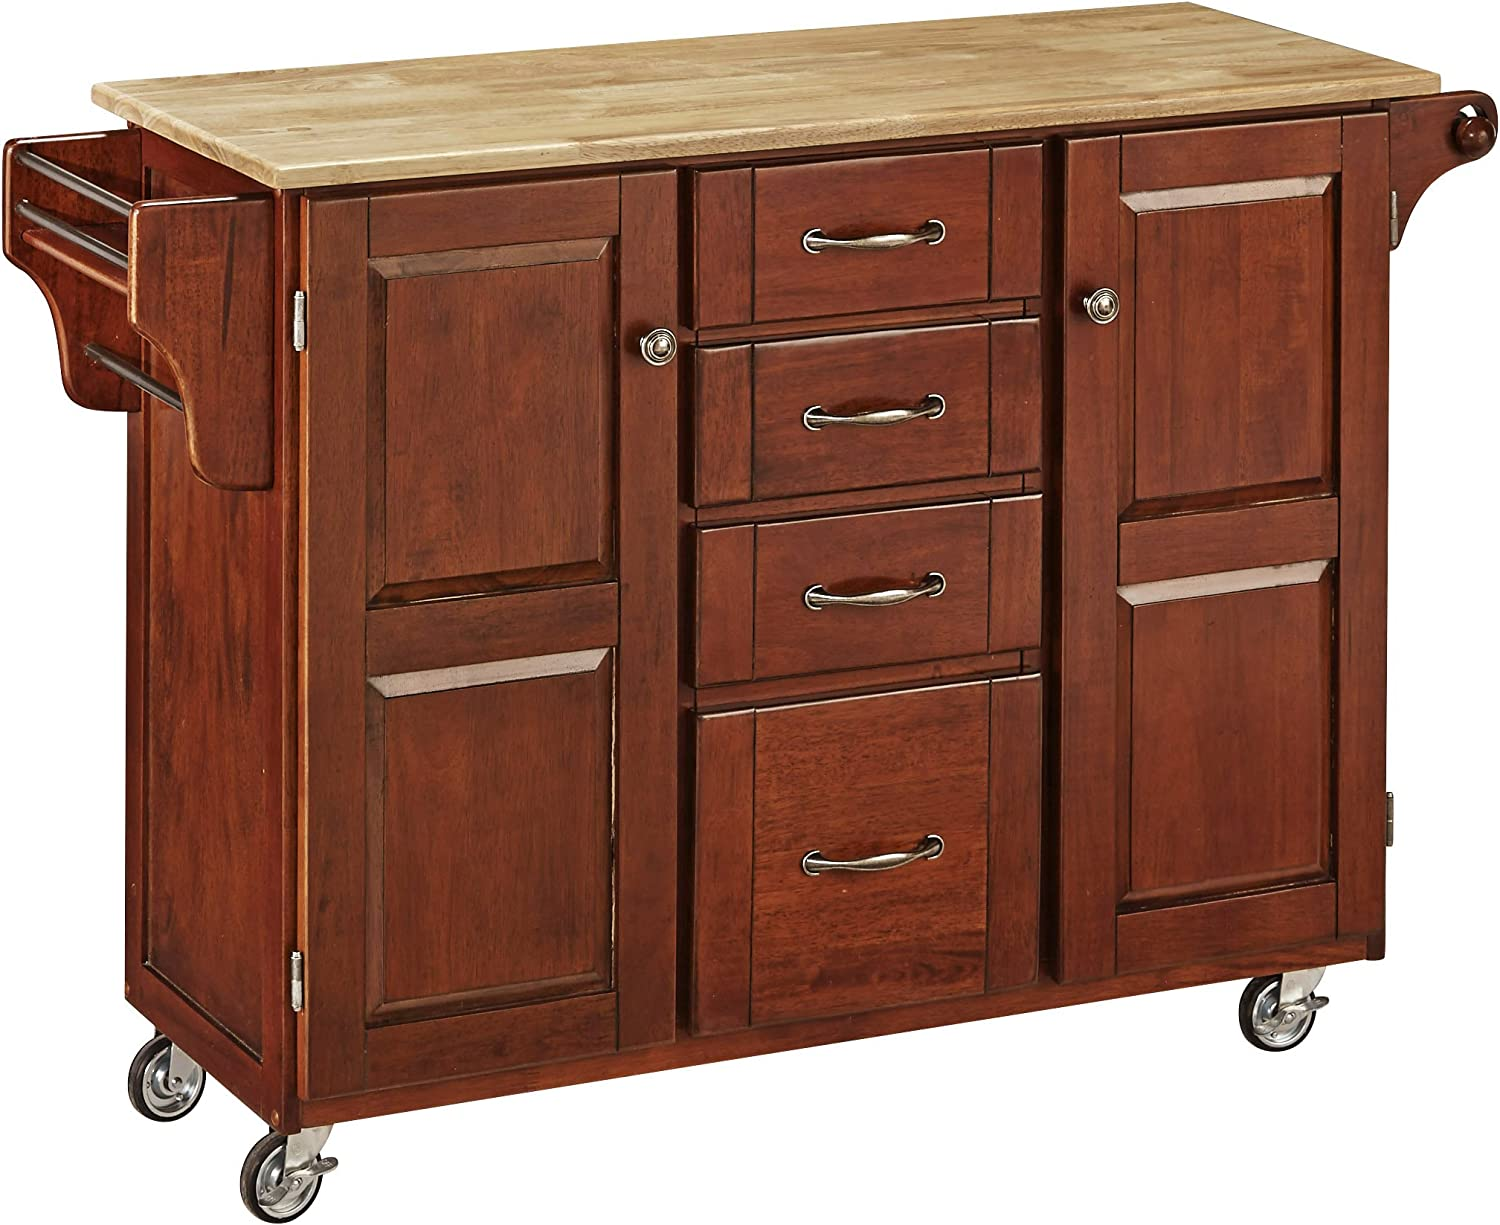 Create-a-Cart Medium Cherry 2 Door Cabinet Kitchen Cart with Natural Wood Top by Home Styles